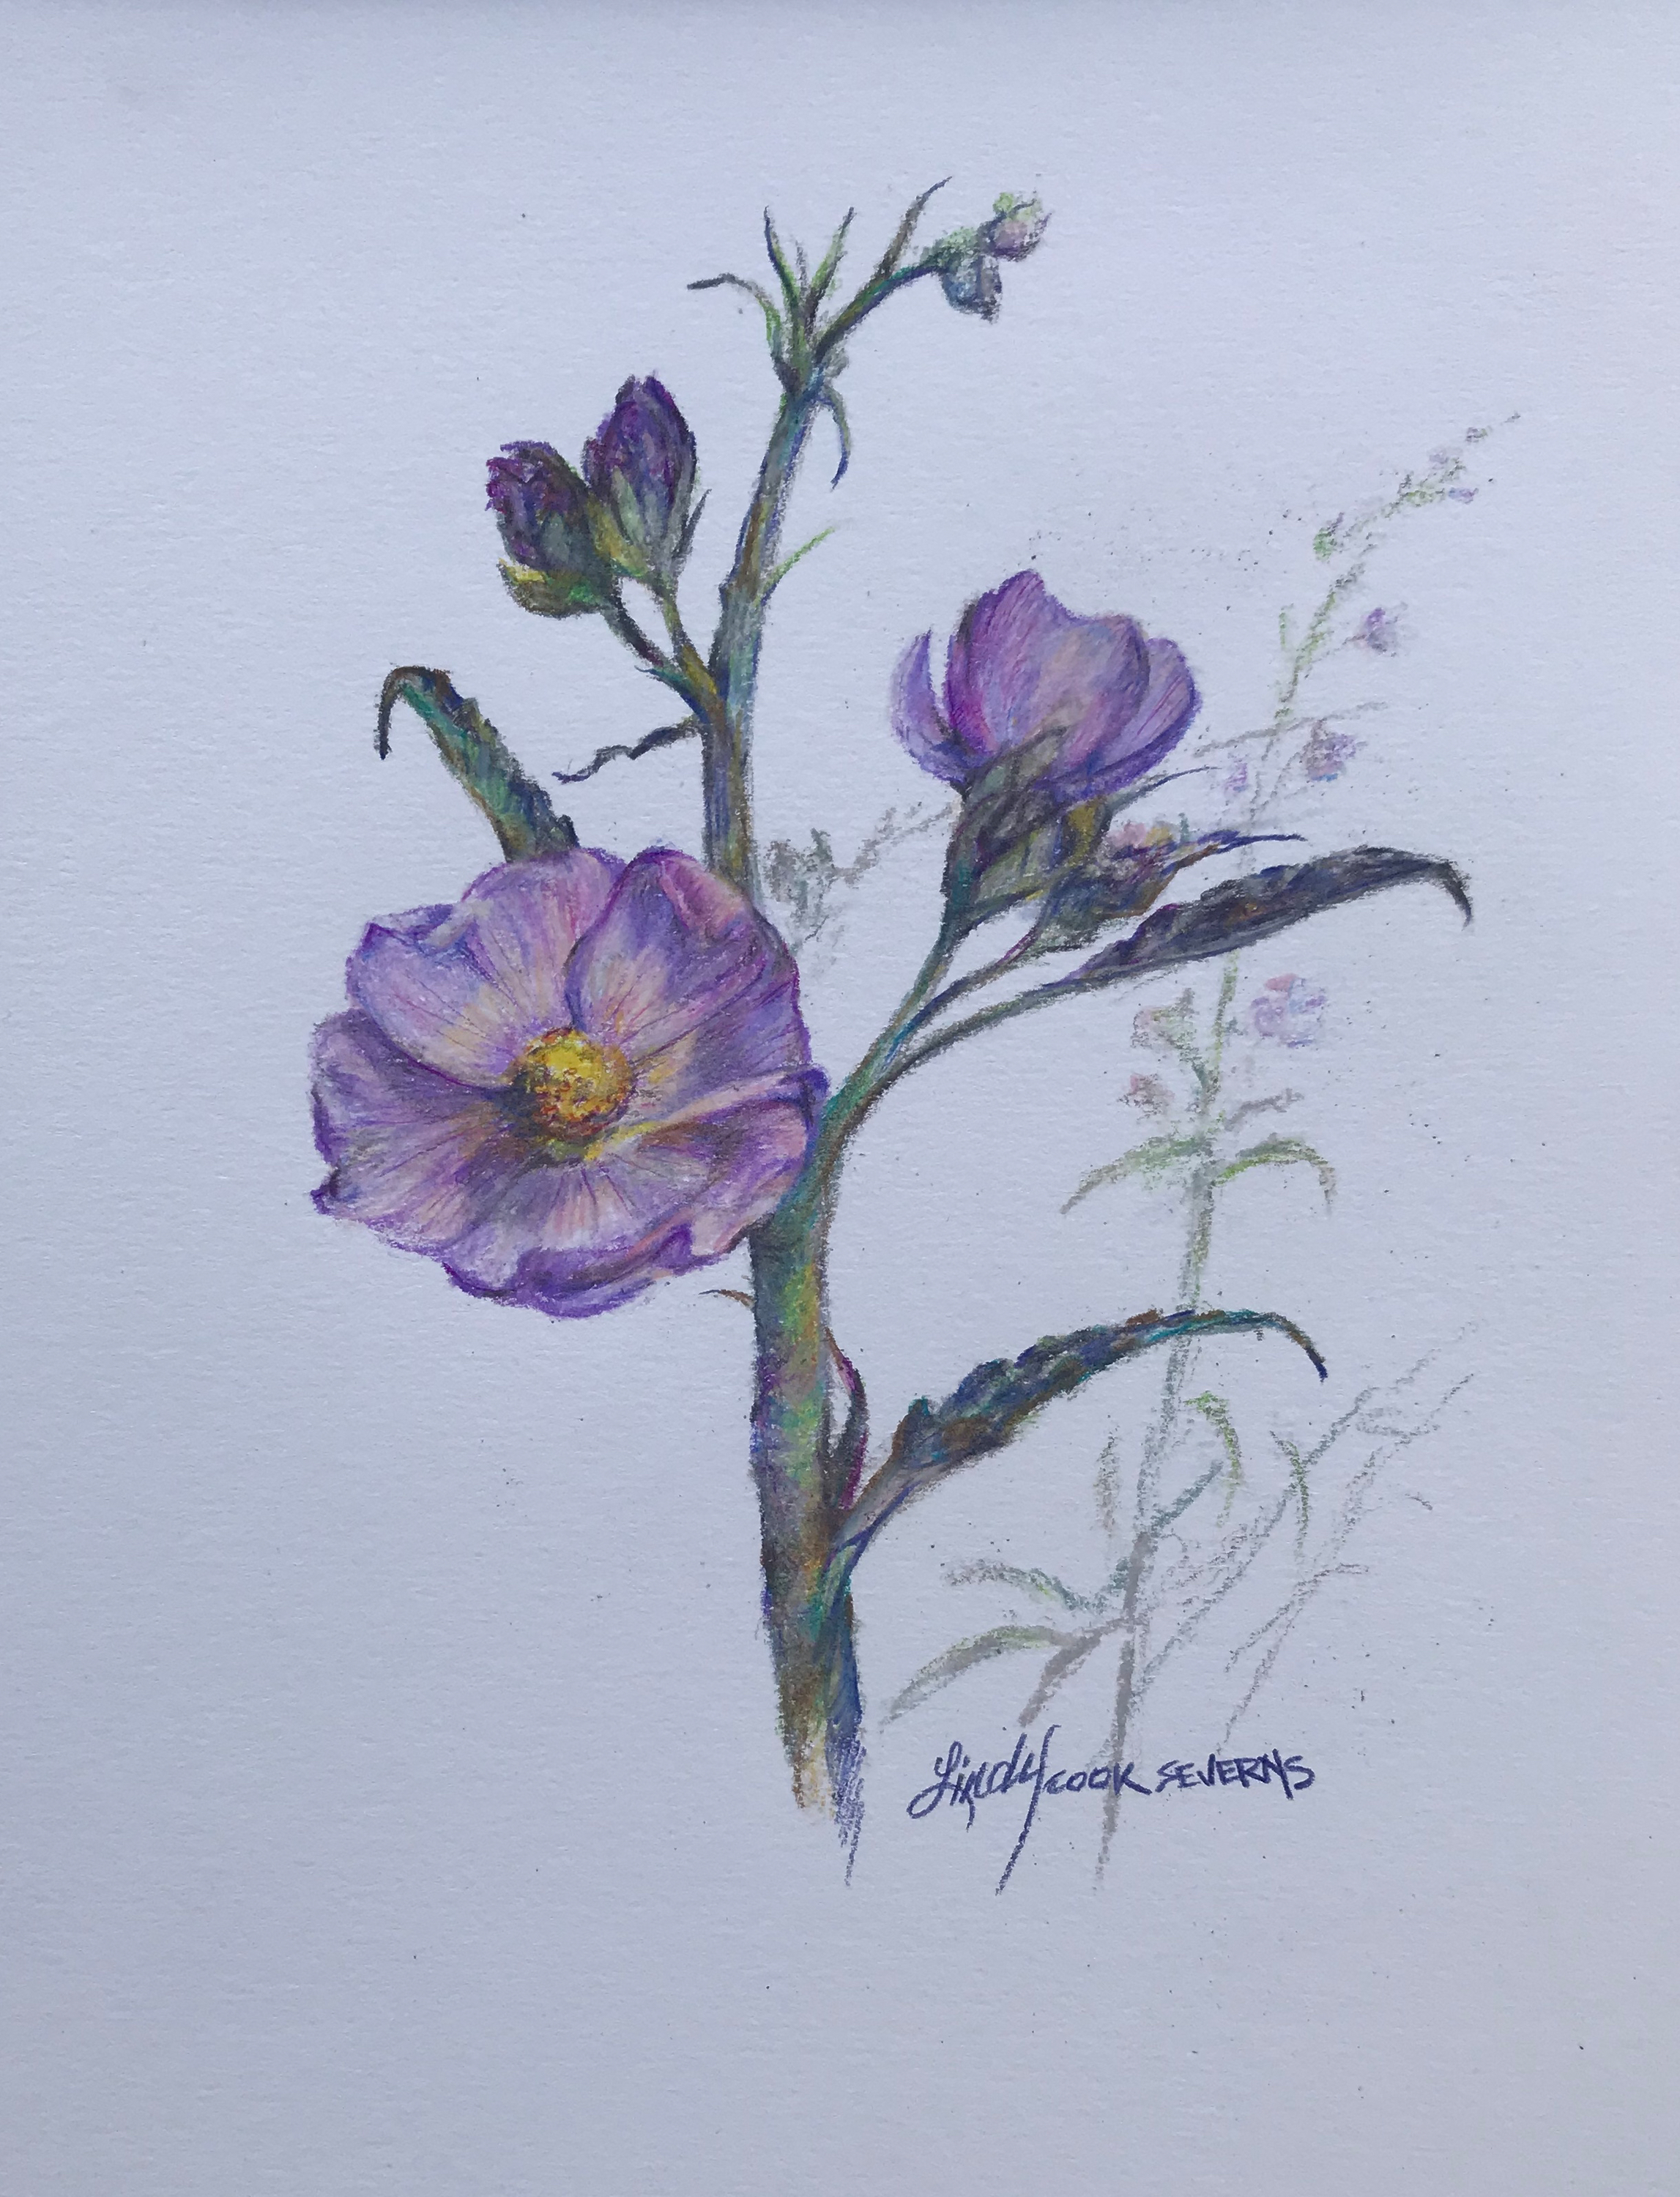 6c18 penstemon 8x10 colored pencil lindy cook severns vikmmx